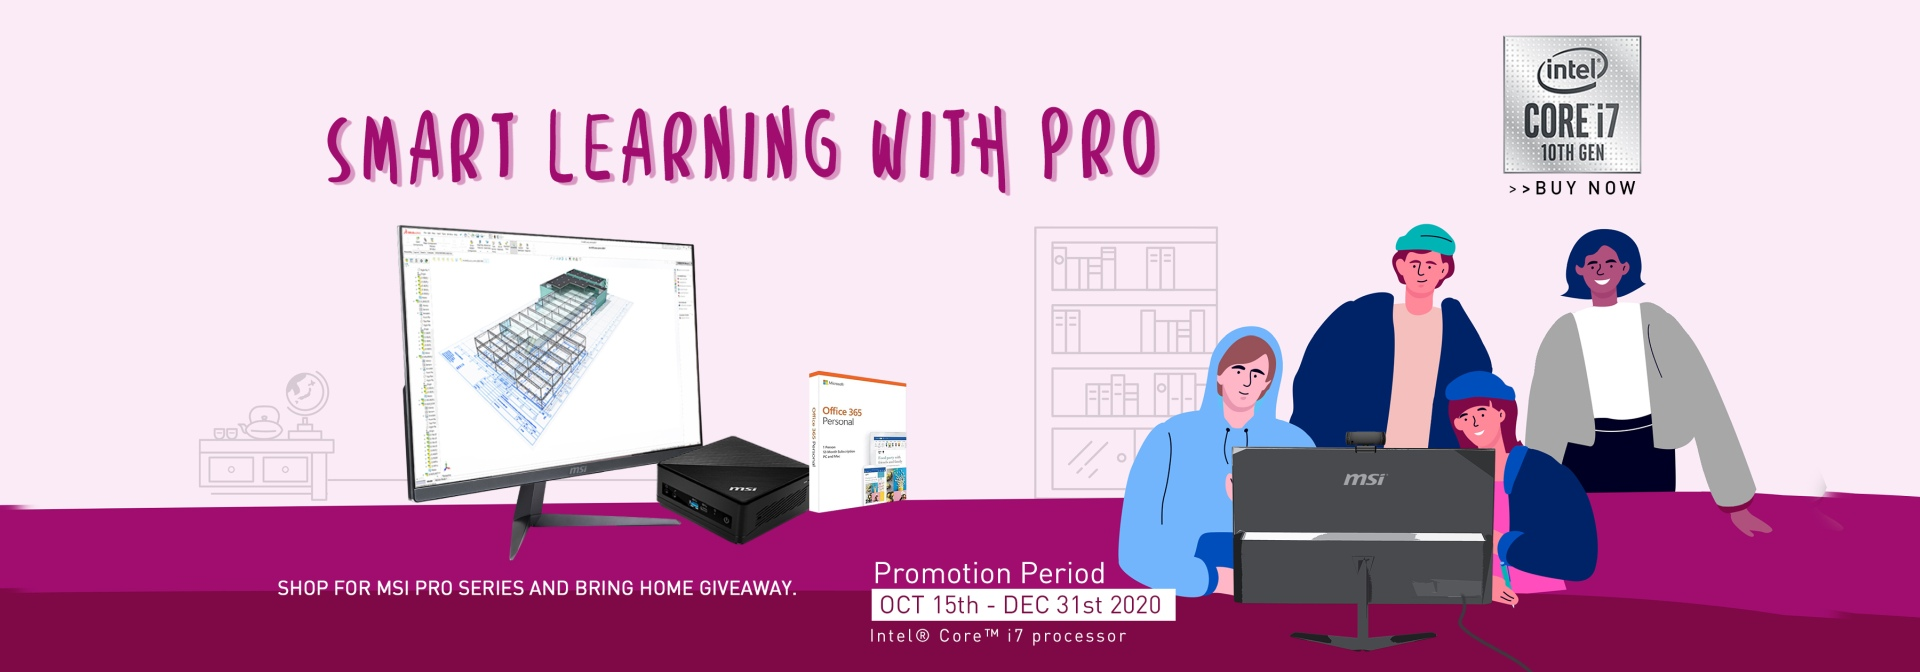 Smart Learning with PRO